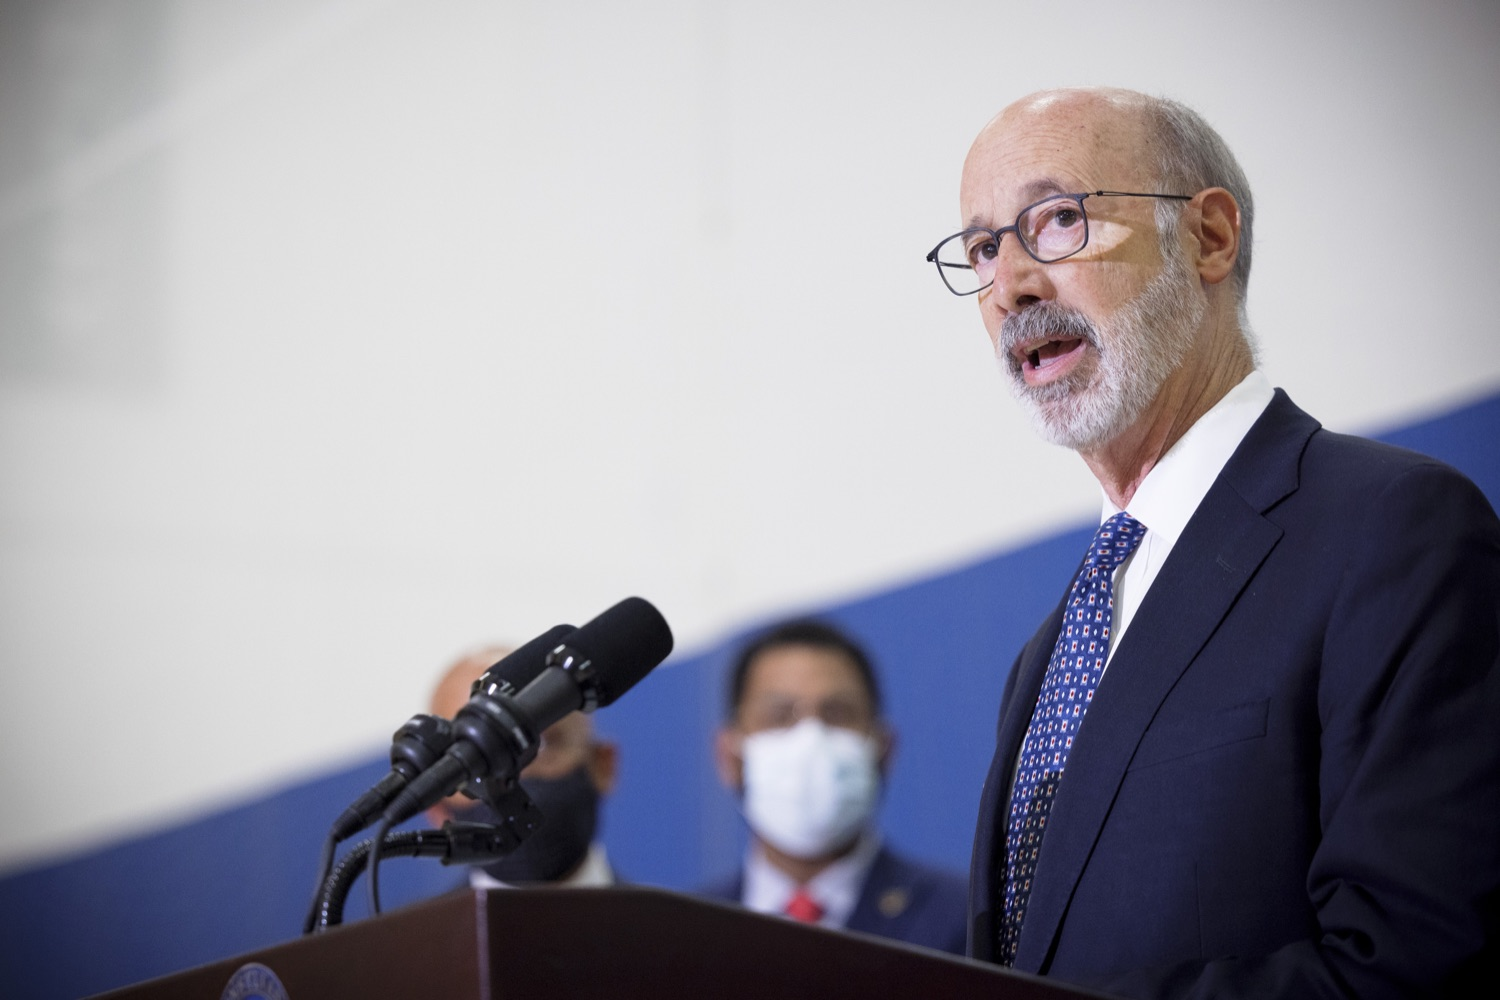 """<a href=""""https://filesource.wostreaming.net/commonwealthofpa/photo/20078_gov_gunviolence_dz_014.jpg"""" target=""""_blank"""">⇣Download Photo<br></a>Pennsylvania Governor Tom Wolf speaking with the press.  Governor Tom Wolf today joined state lawmakers to remind communities and organizations that $24 million in state funding is available to address community violence.  Philadelphia, PA - September 23, 2021"""